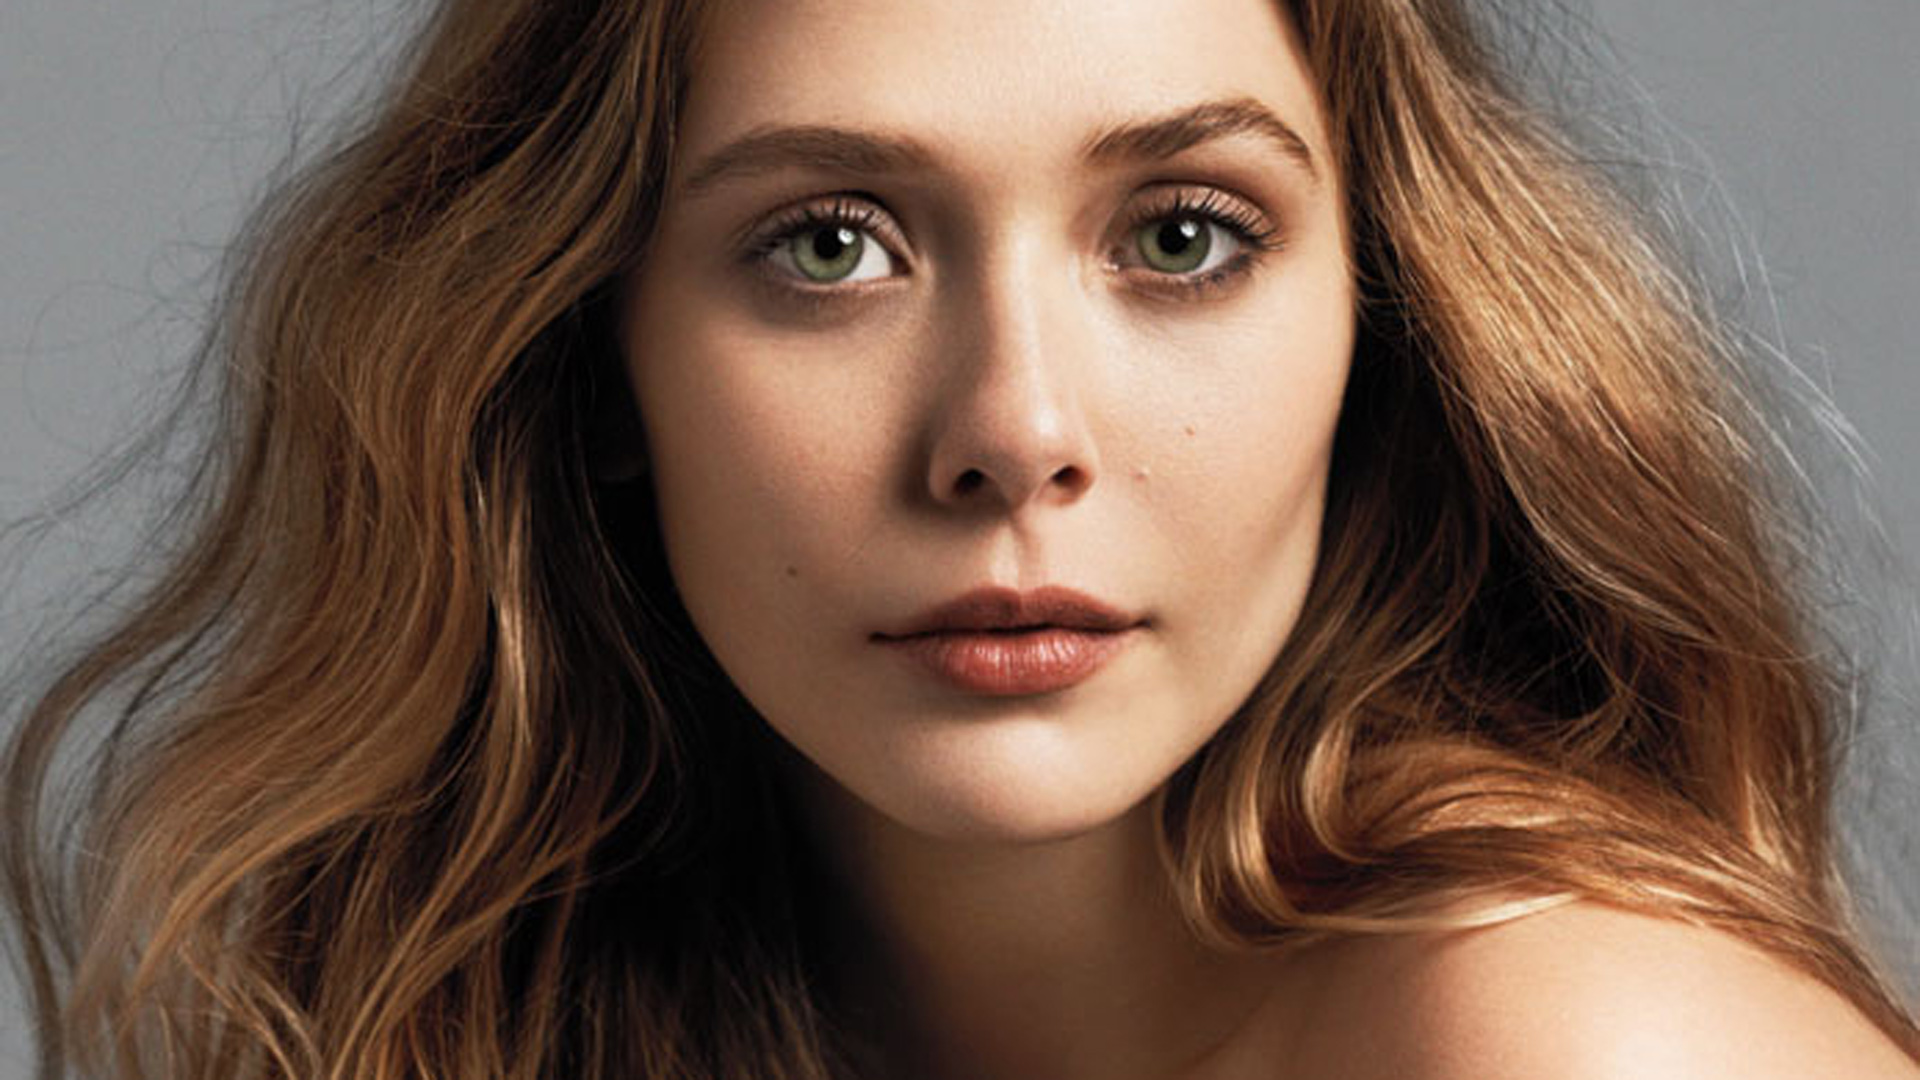 Elizabeth Olsen Wallpapers   HD HdCoolWallpapersCom 1920x1080